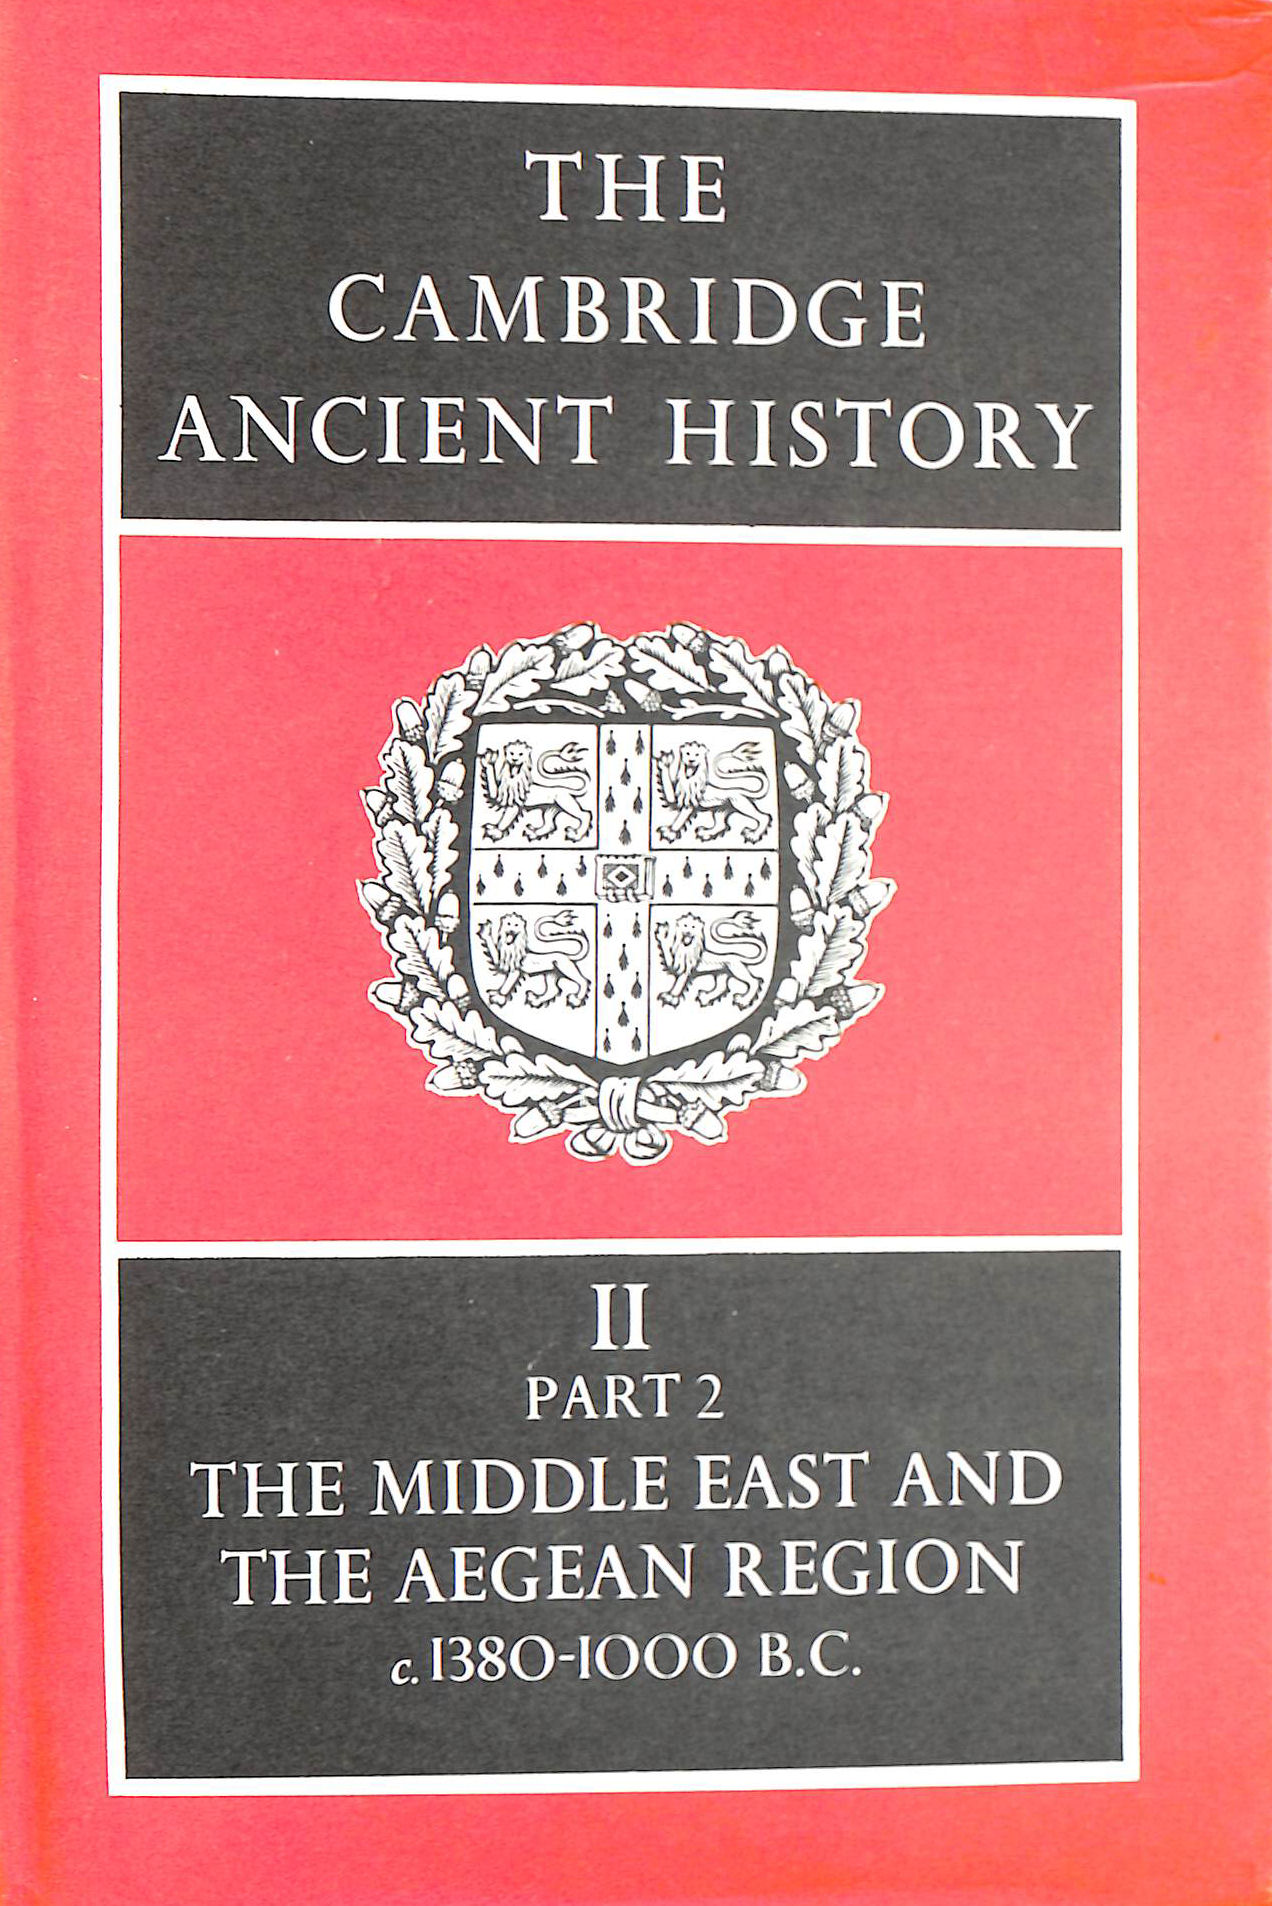 Image for Middle East and the Aegean Region, C. 1380-1000 BC Vol. 2, Part 2